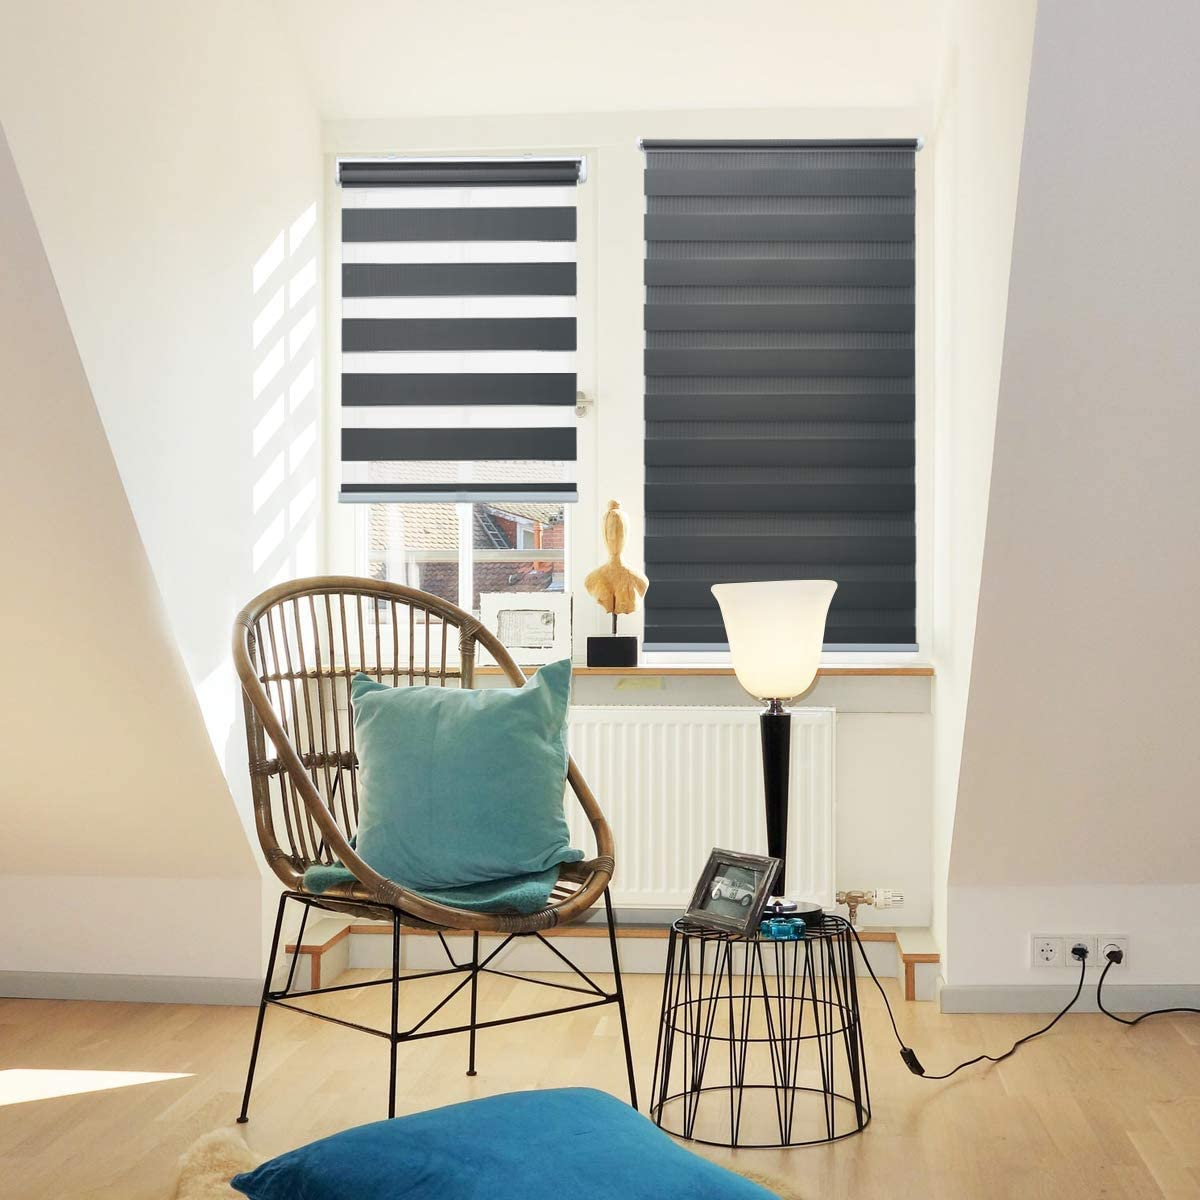 Zebra Shades Privacy Sheer Blinds Cordless Light Control Dual Layer Light Filtering Blind Easy to Pull for Home Bedroom and Office, Grey , 29